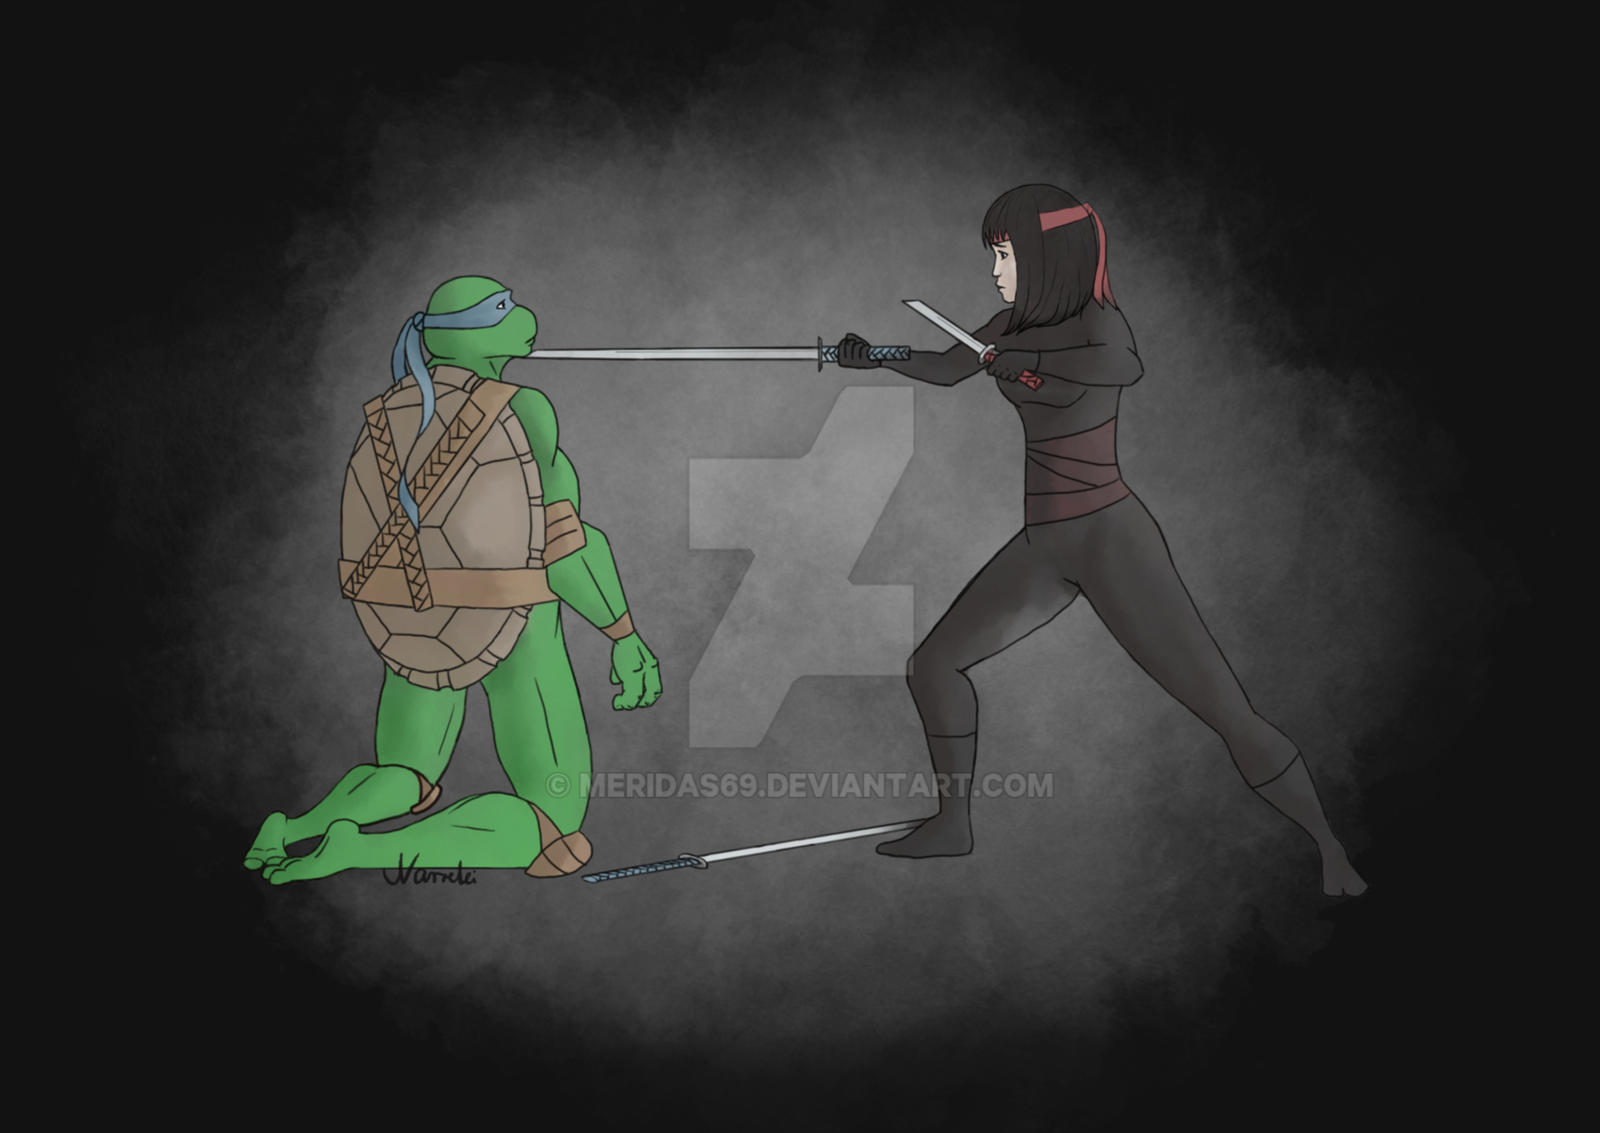 Leo And Karai TMNT By Meridas69 On DeviantArt